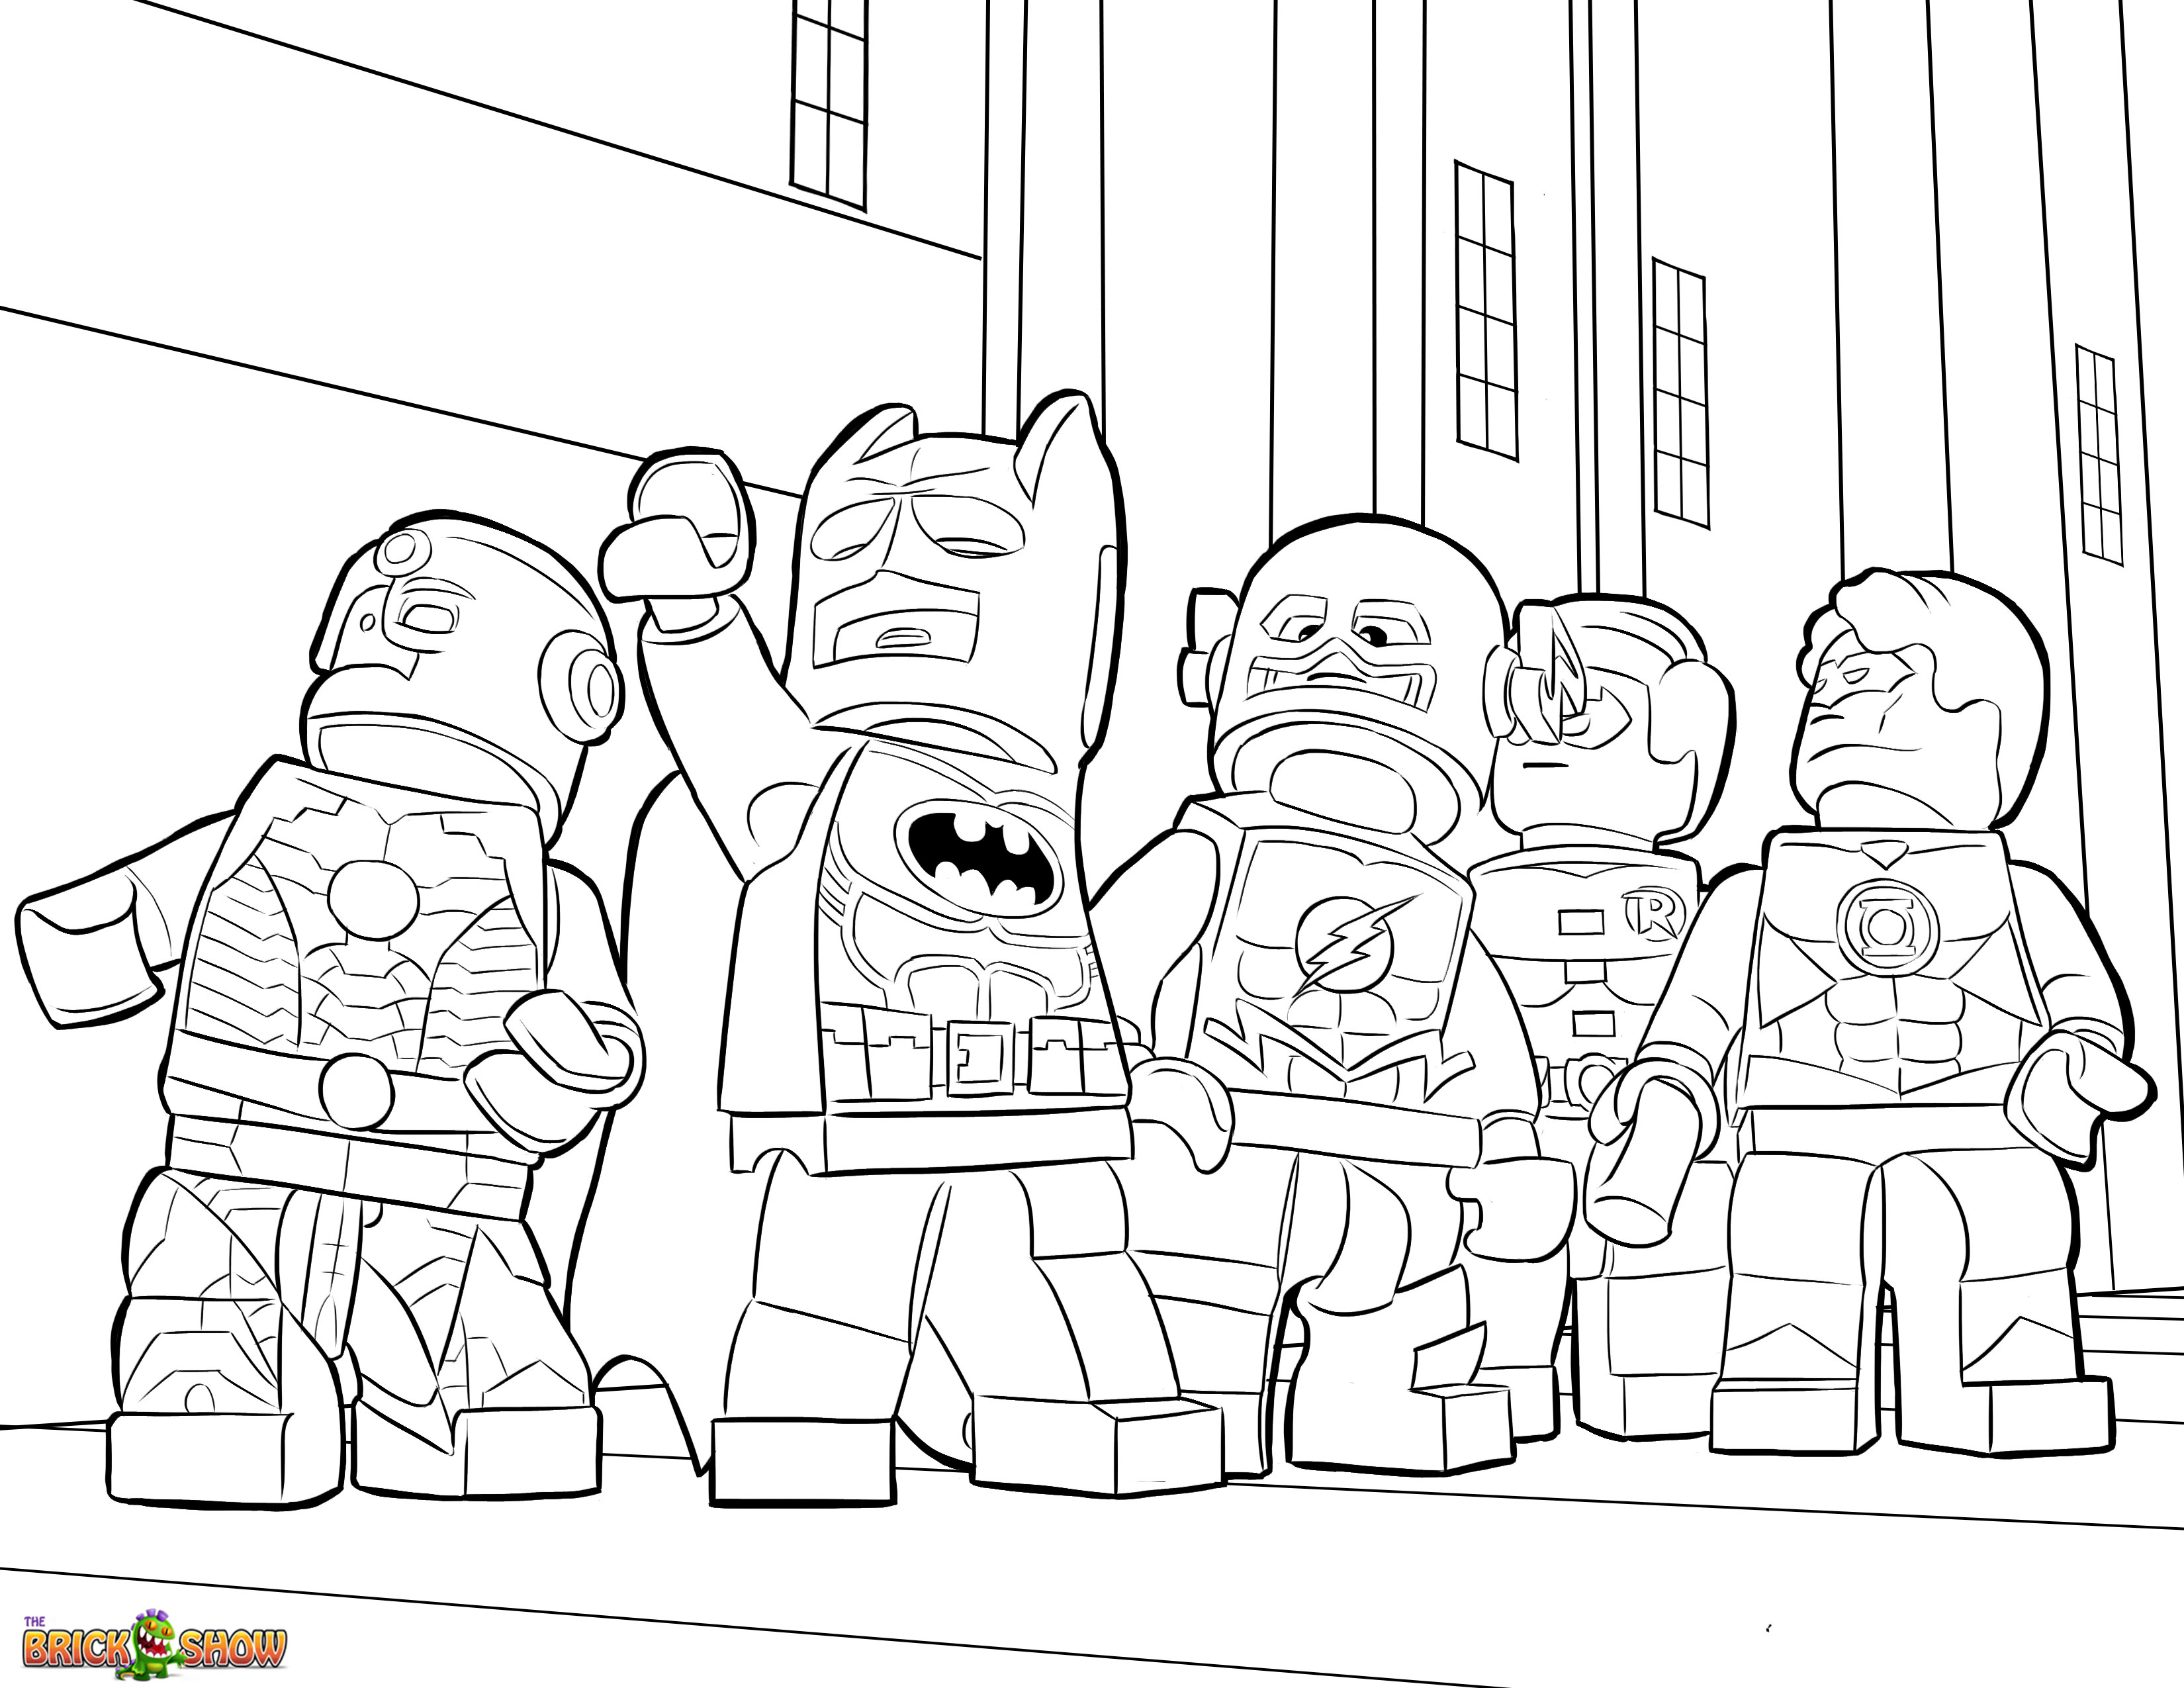 Lego coloring sheets only coloring pages for Lego color page